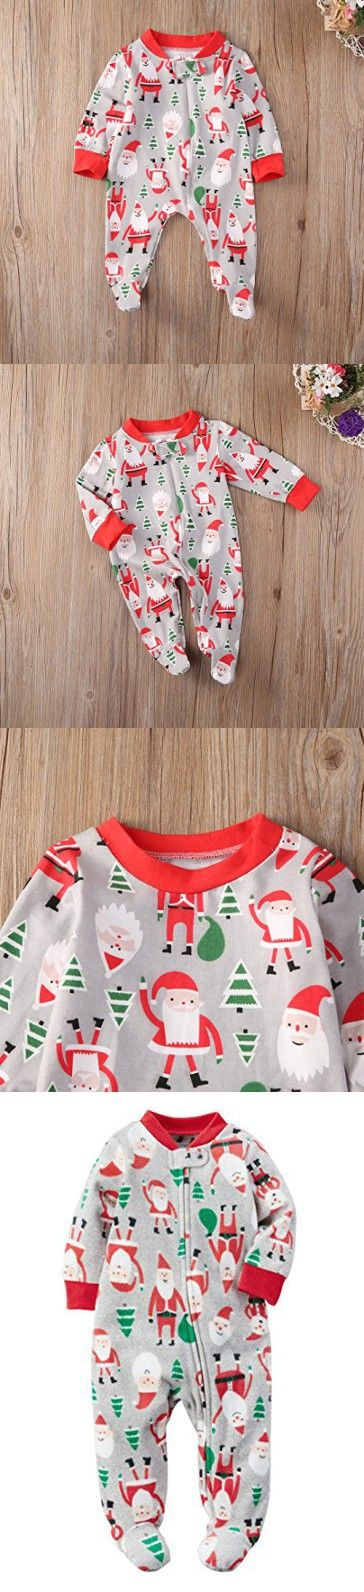 Newborn Baby Girls One-pieces Infant Santa Claus Christmas tree Clothes Outfits (6-12 Months, Red)